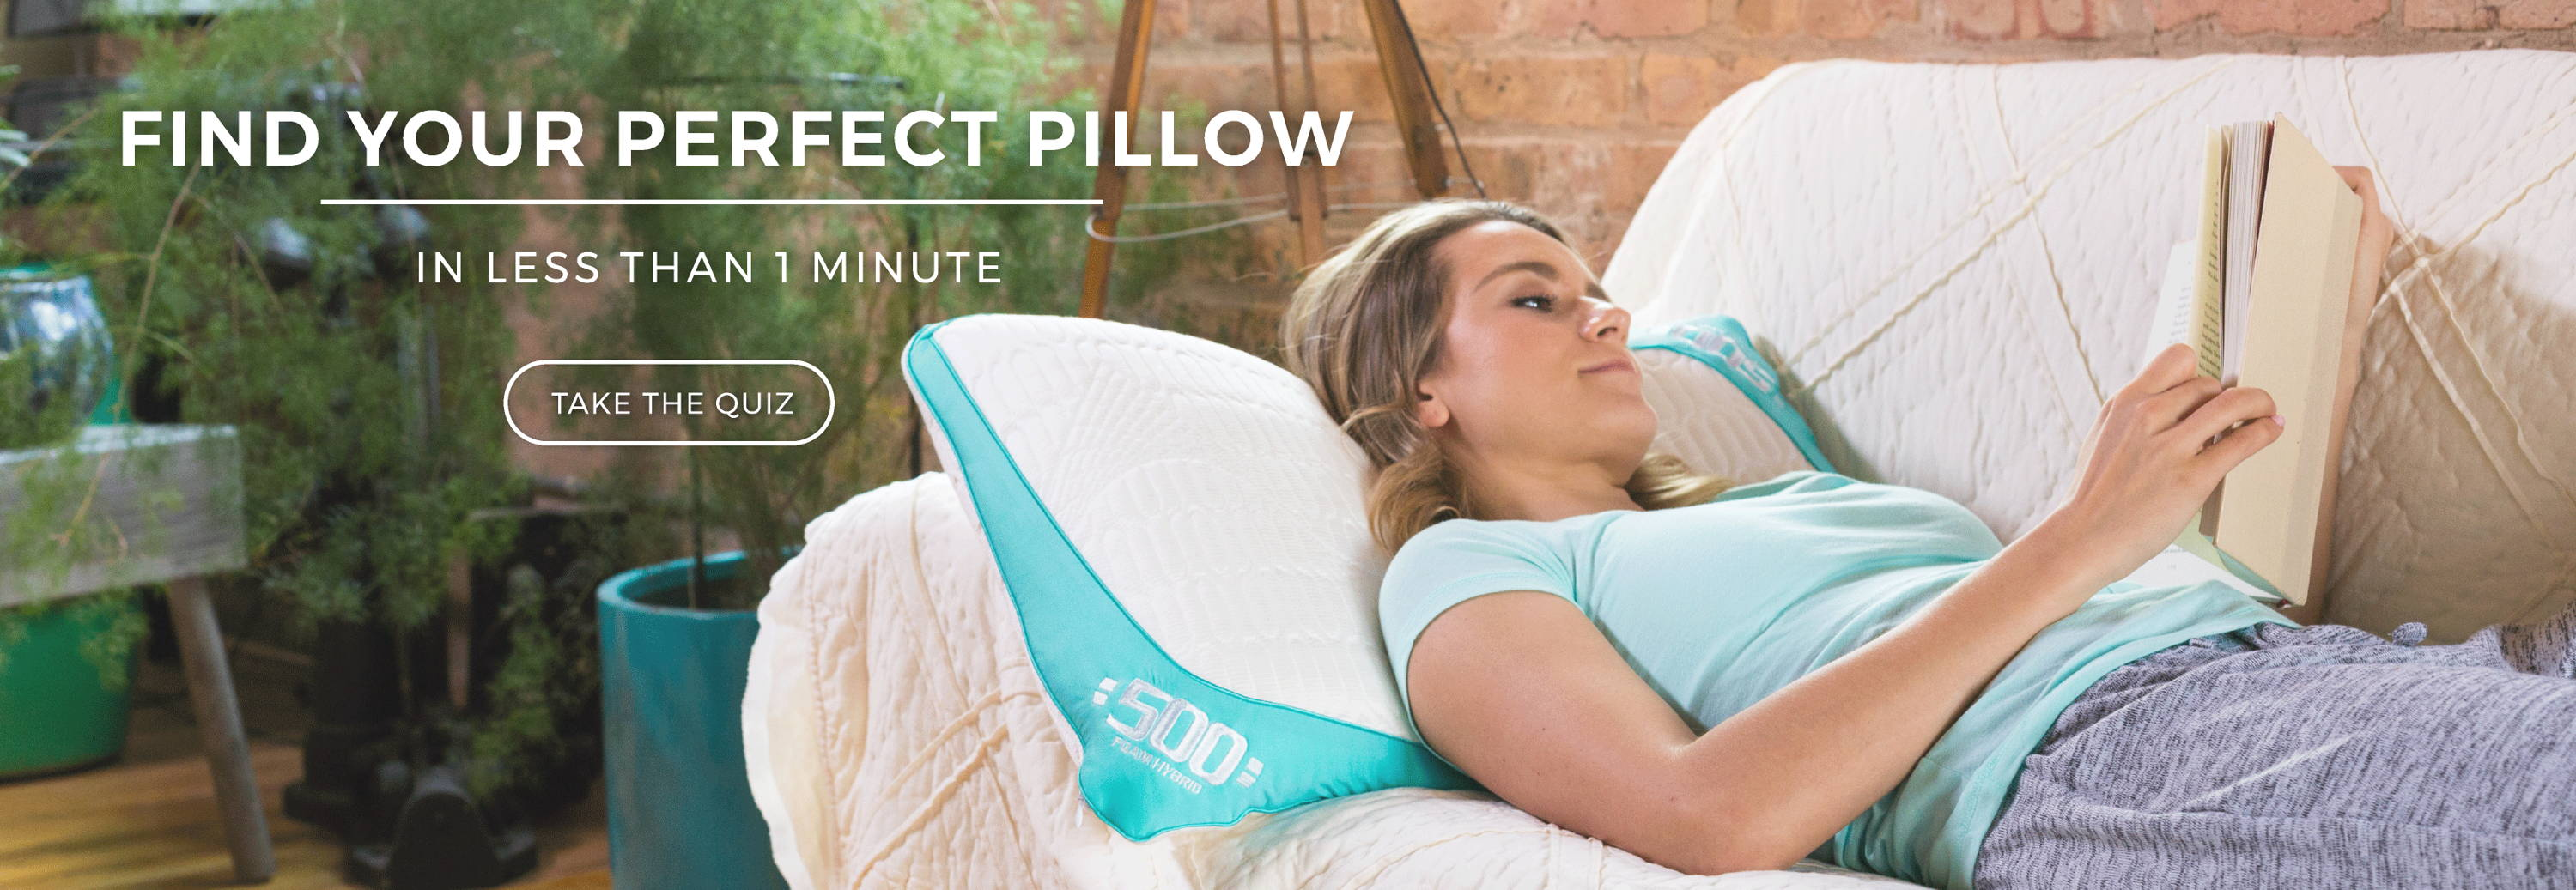 find your perfect pillow